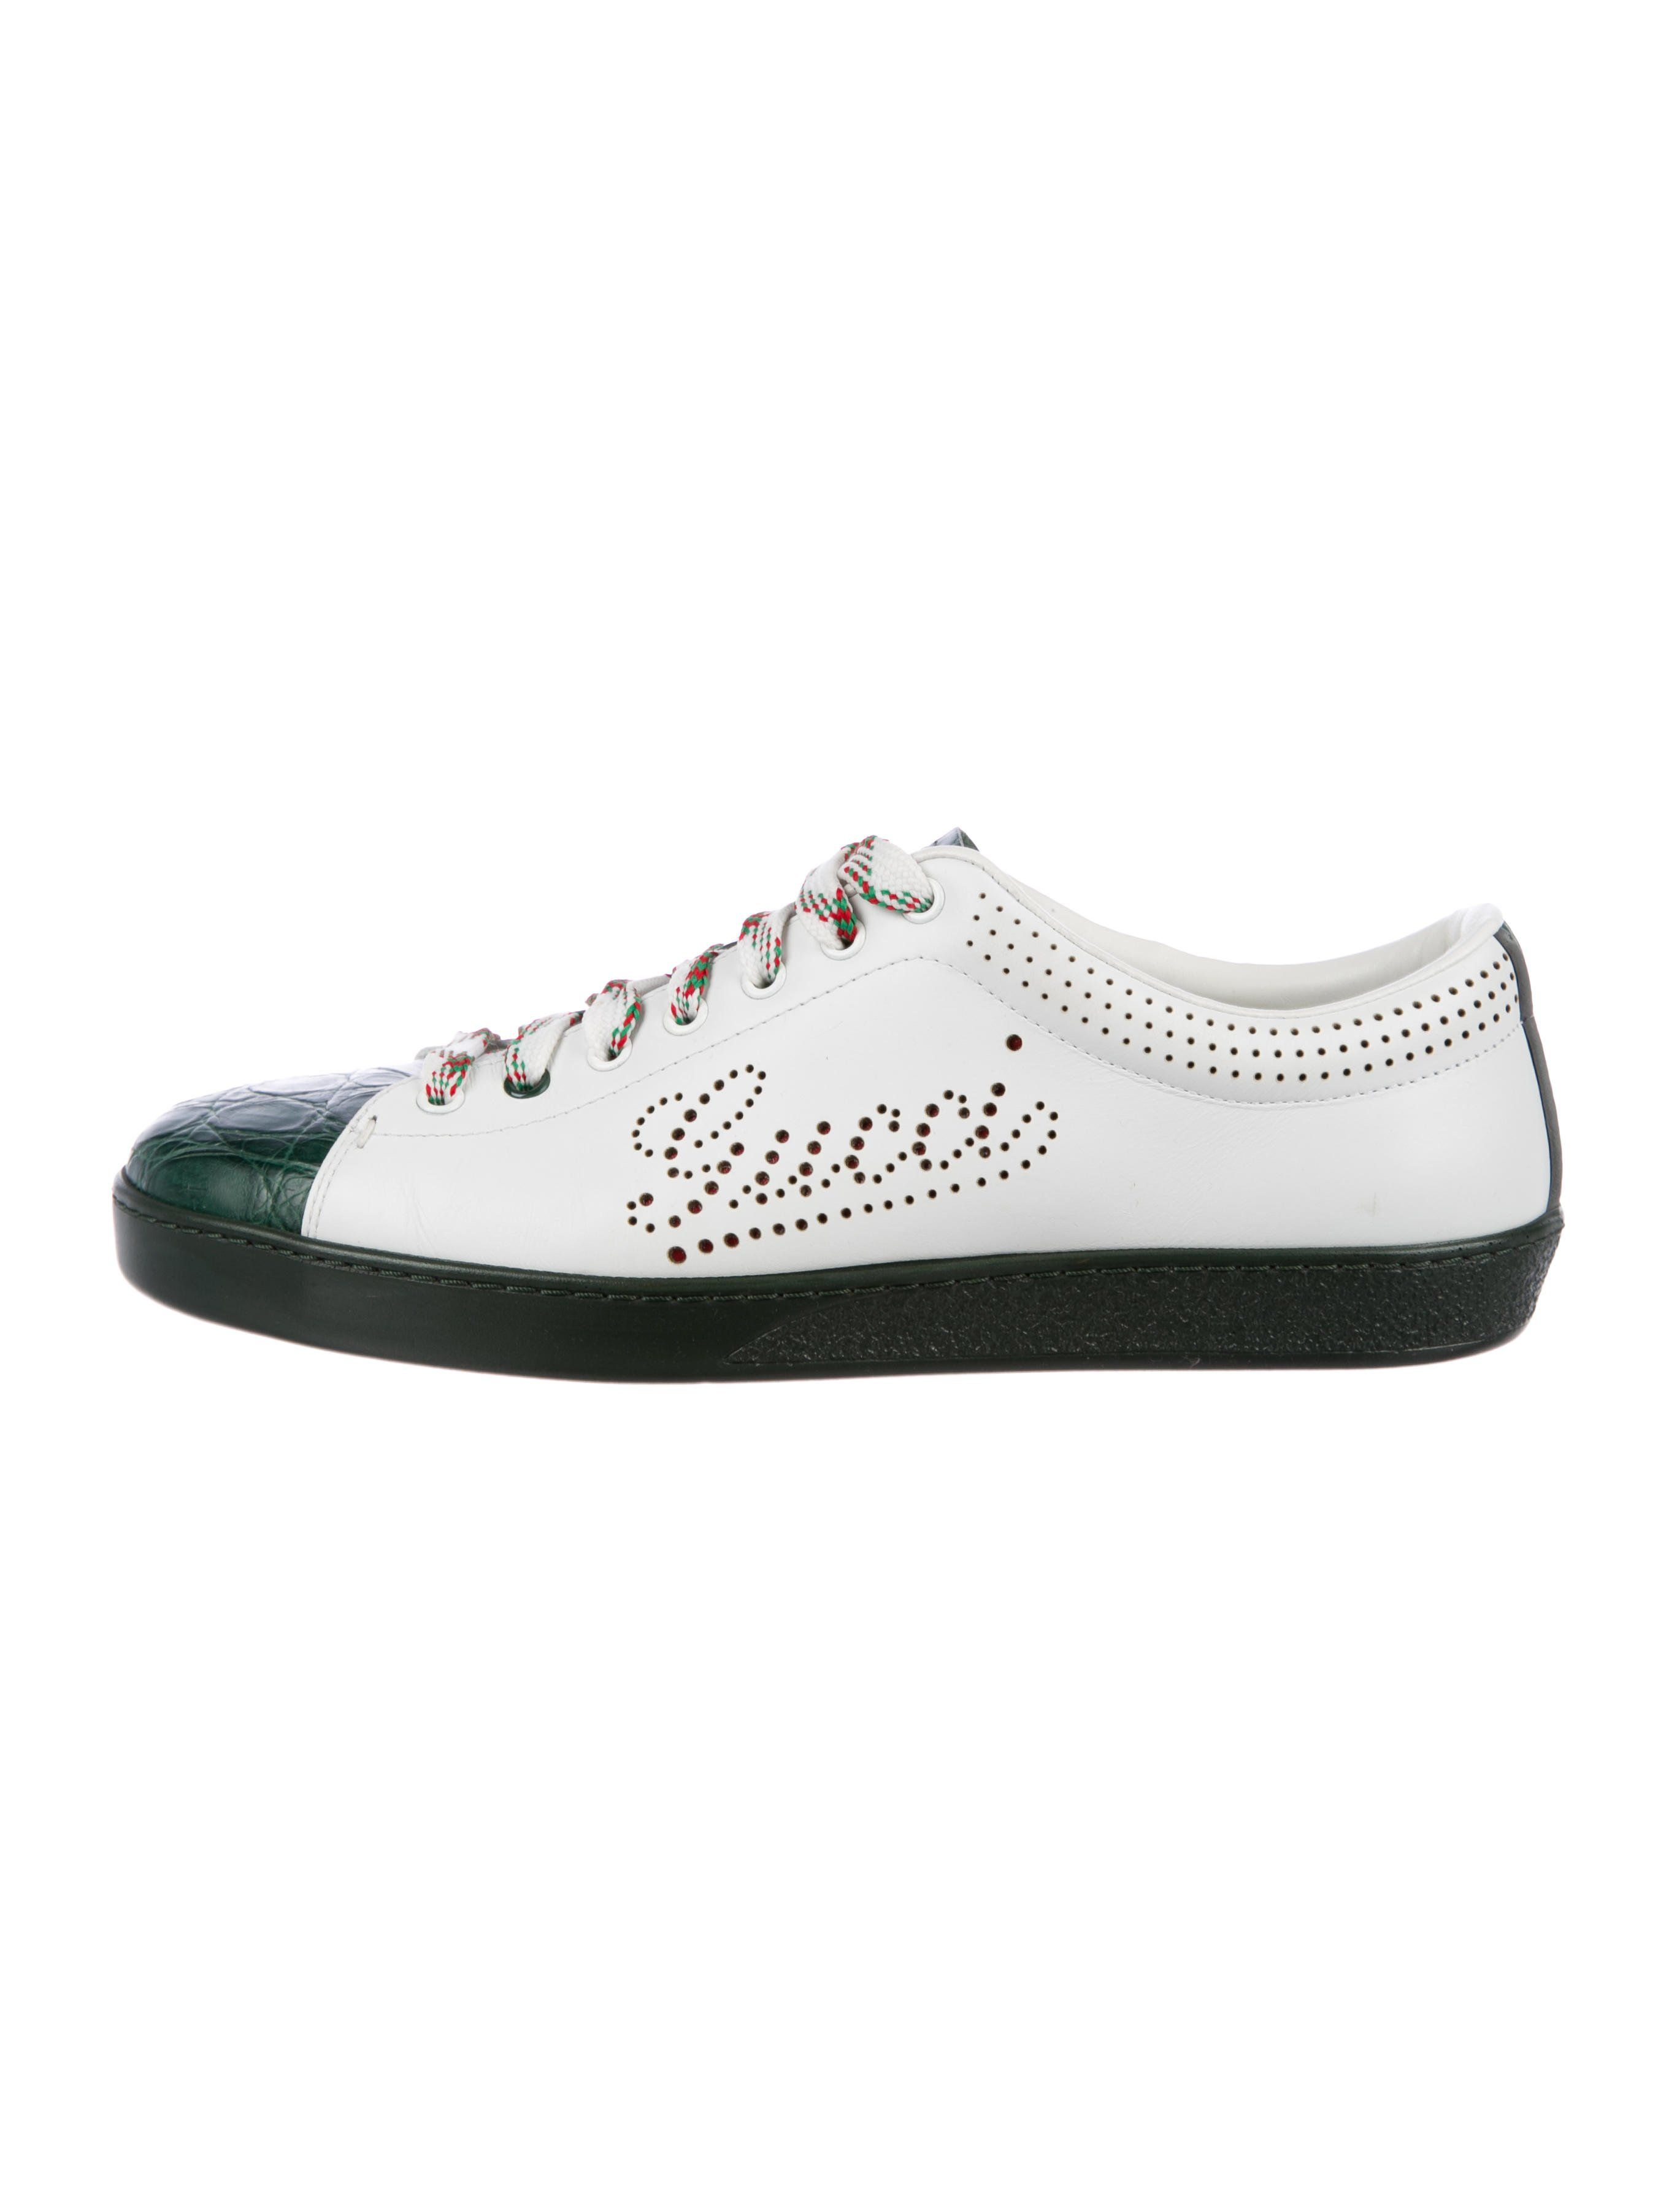 b6a80b738875 Men s white leather Gucci low-top sneakers with green crocodile trim ...